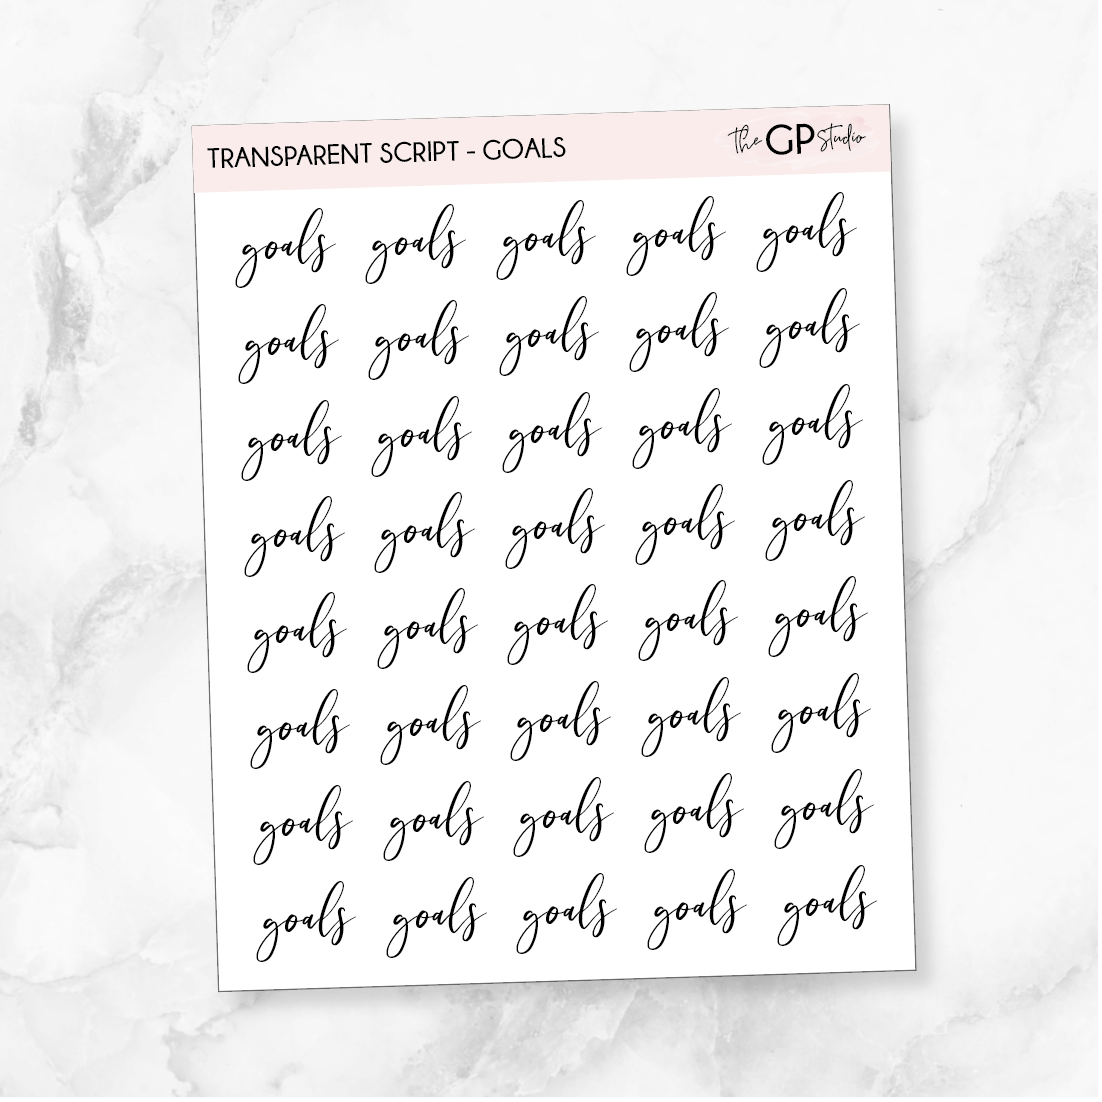 TRANSPARENT GOALS SCRIPT - Clear Stickers-The GP Studio